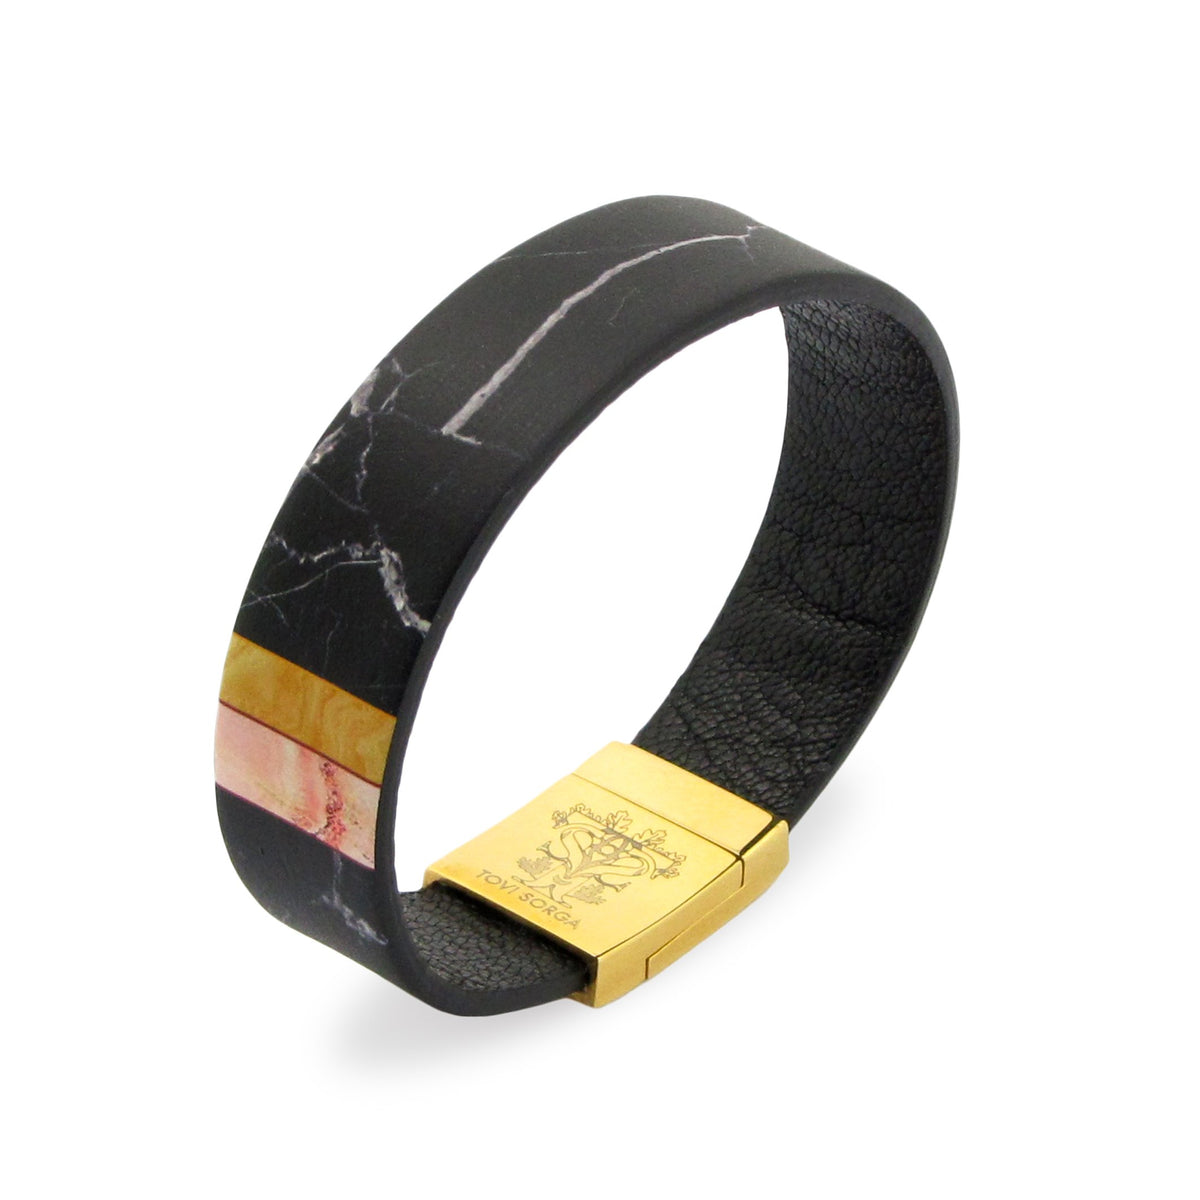 Leather Contactless Payment Bracelet: Black Marble Contactless Payment Bracelet Tovi Sorga Extra-Small Black